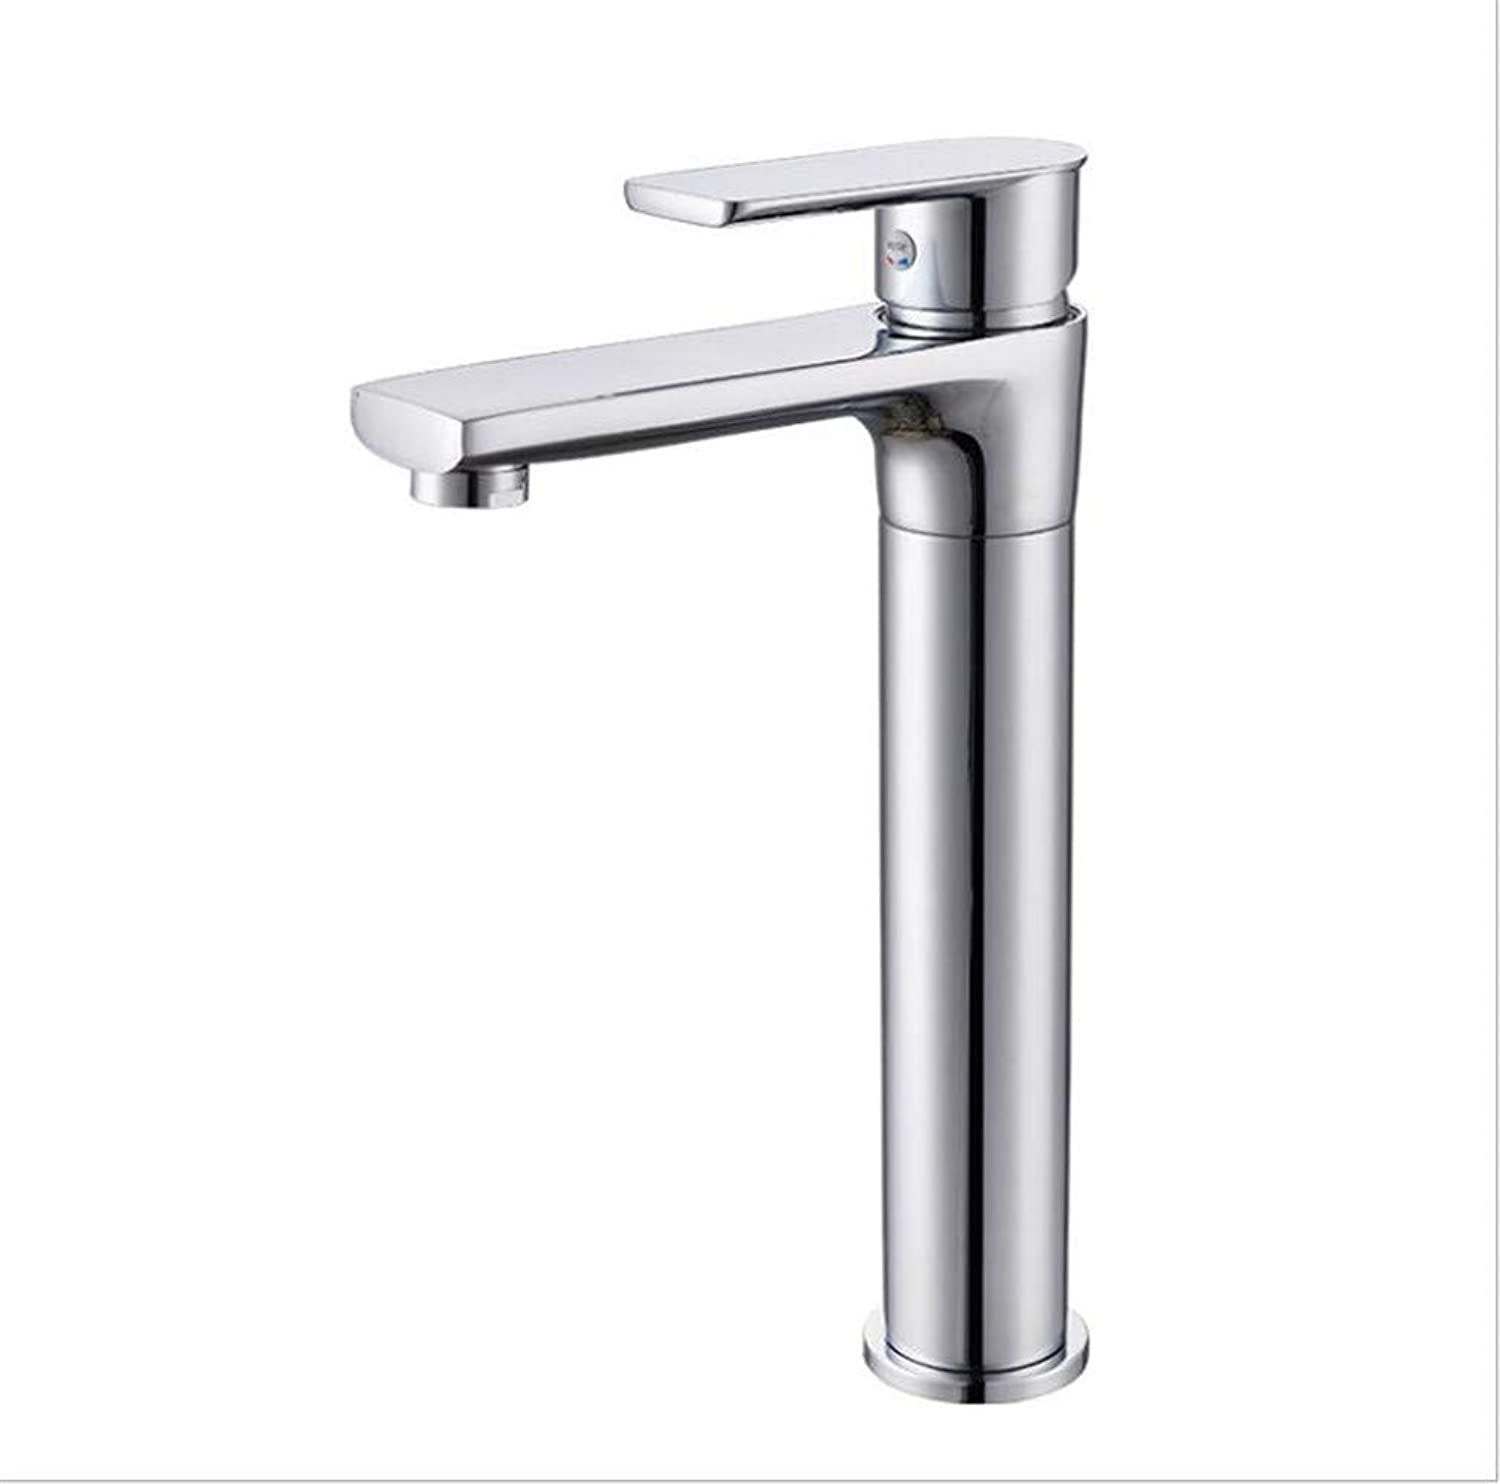 Bathroom Sink Basin Lever Mixer Tap Cold and Hot Bathroom Faucet with Copper-Plated Washbasin